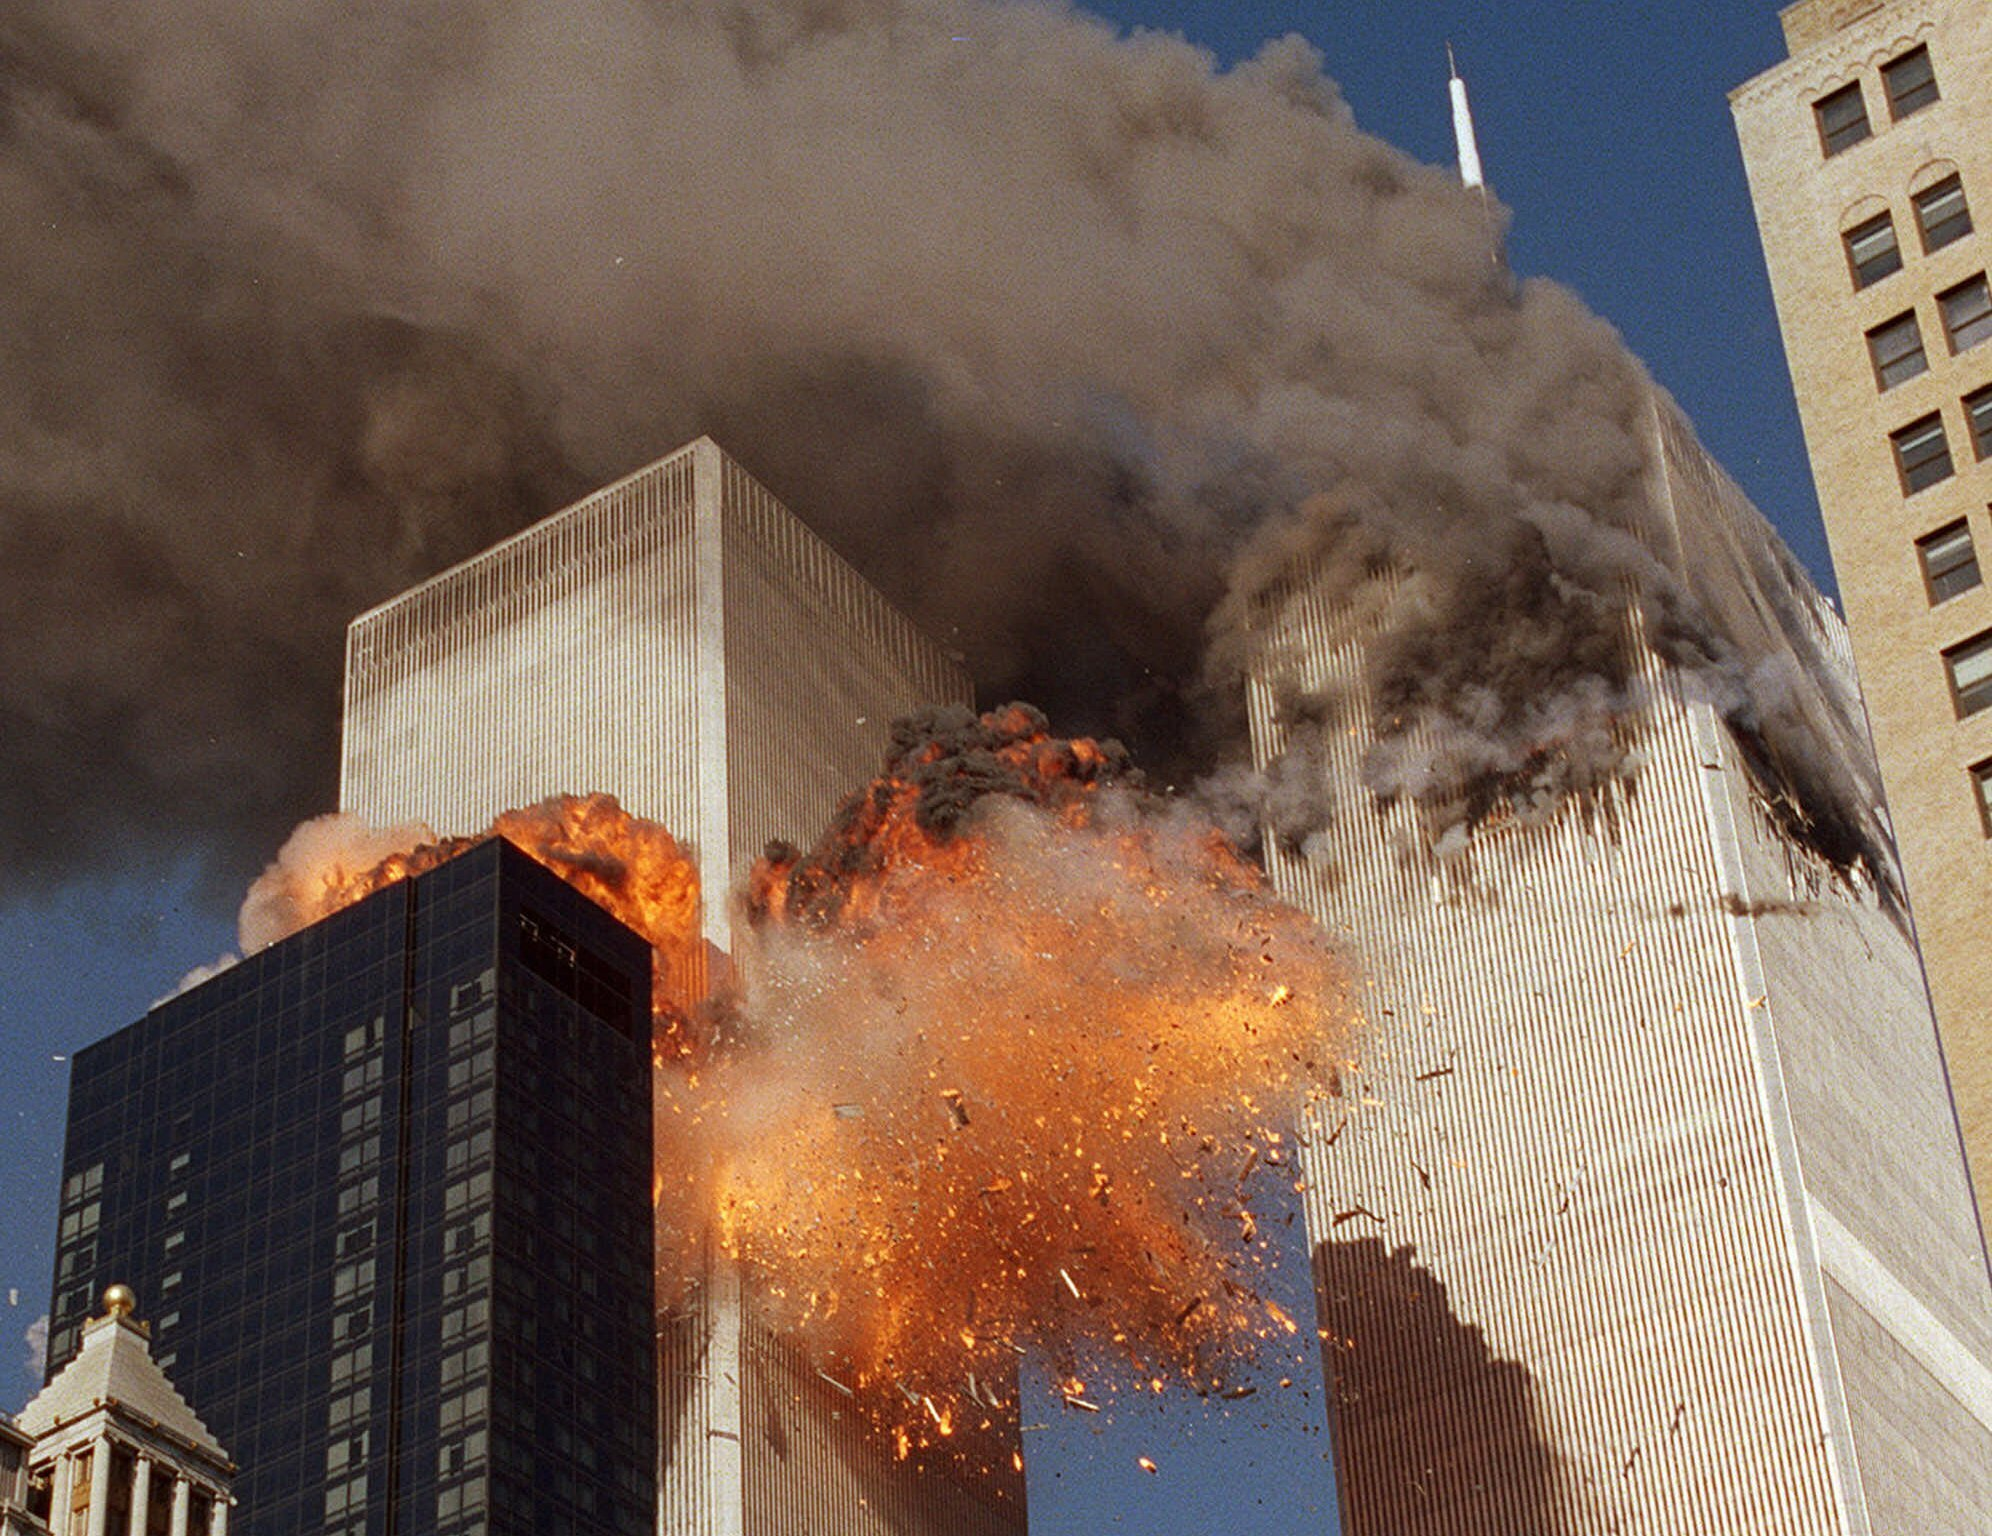 Smoke billows from one of the towers of the World Trade Center and flames and debris explode from the second tower on Sept. 11, 2001.